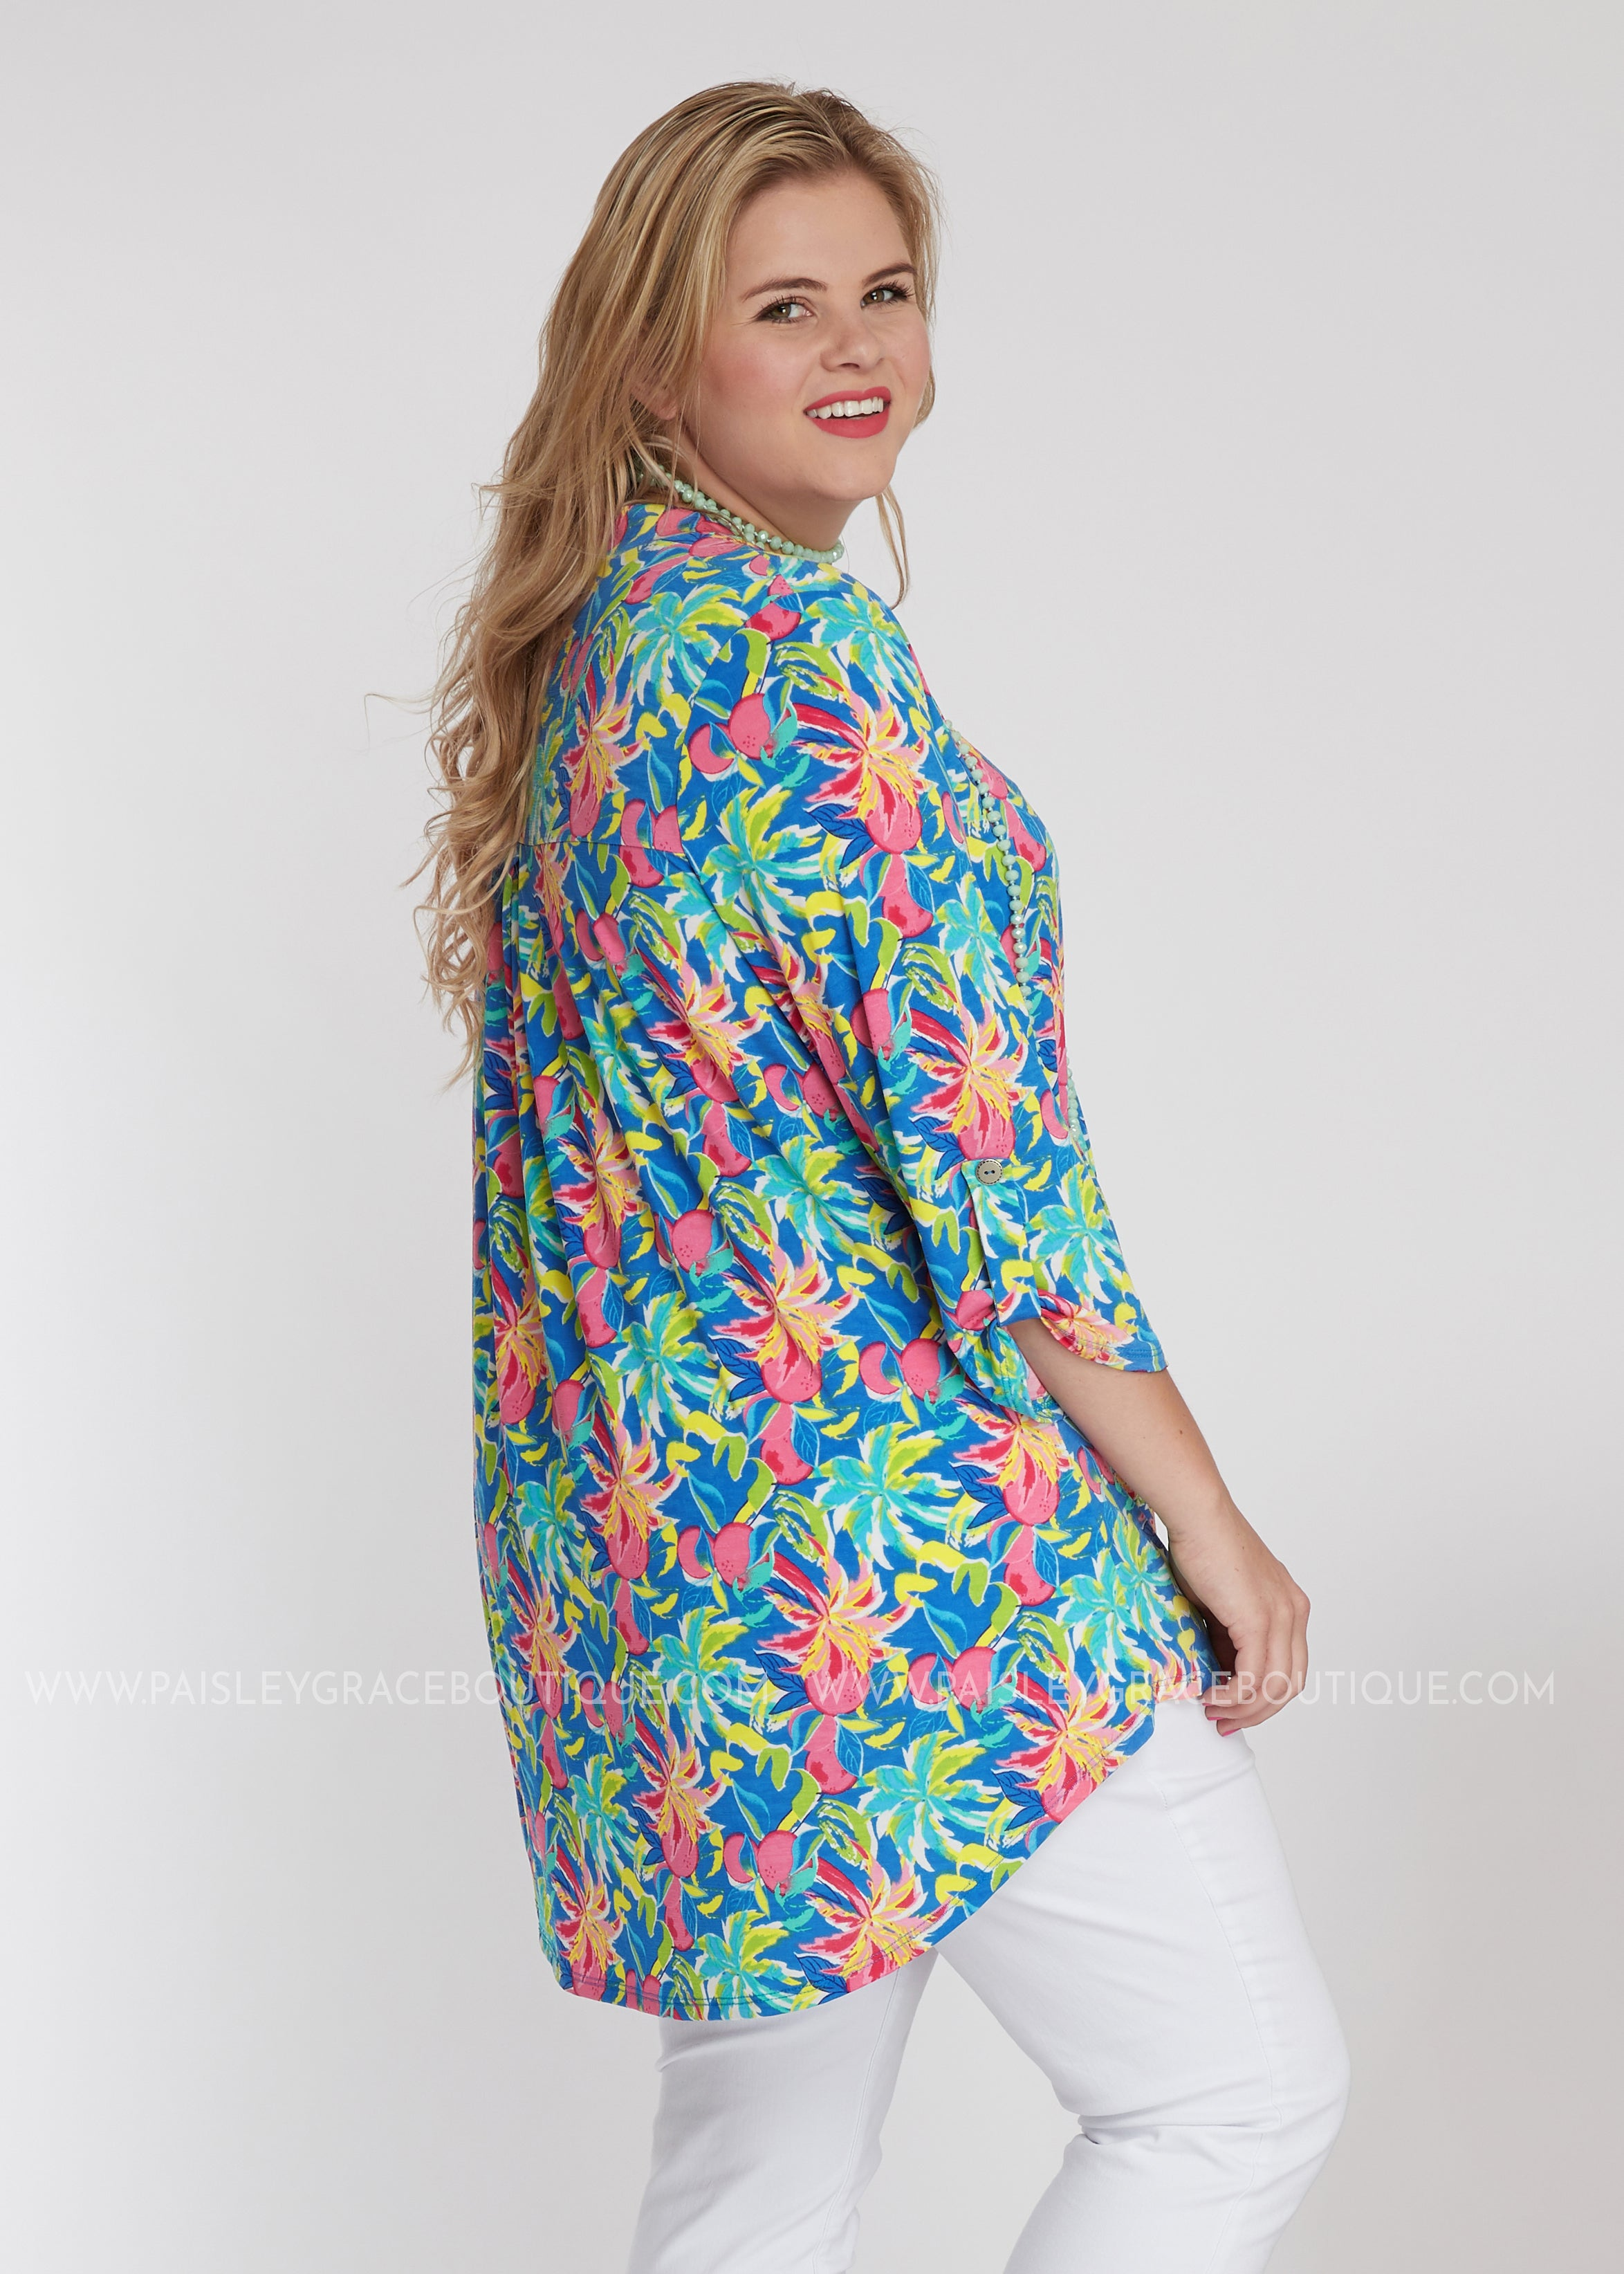 Tahitian Sunrise Top